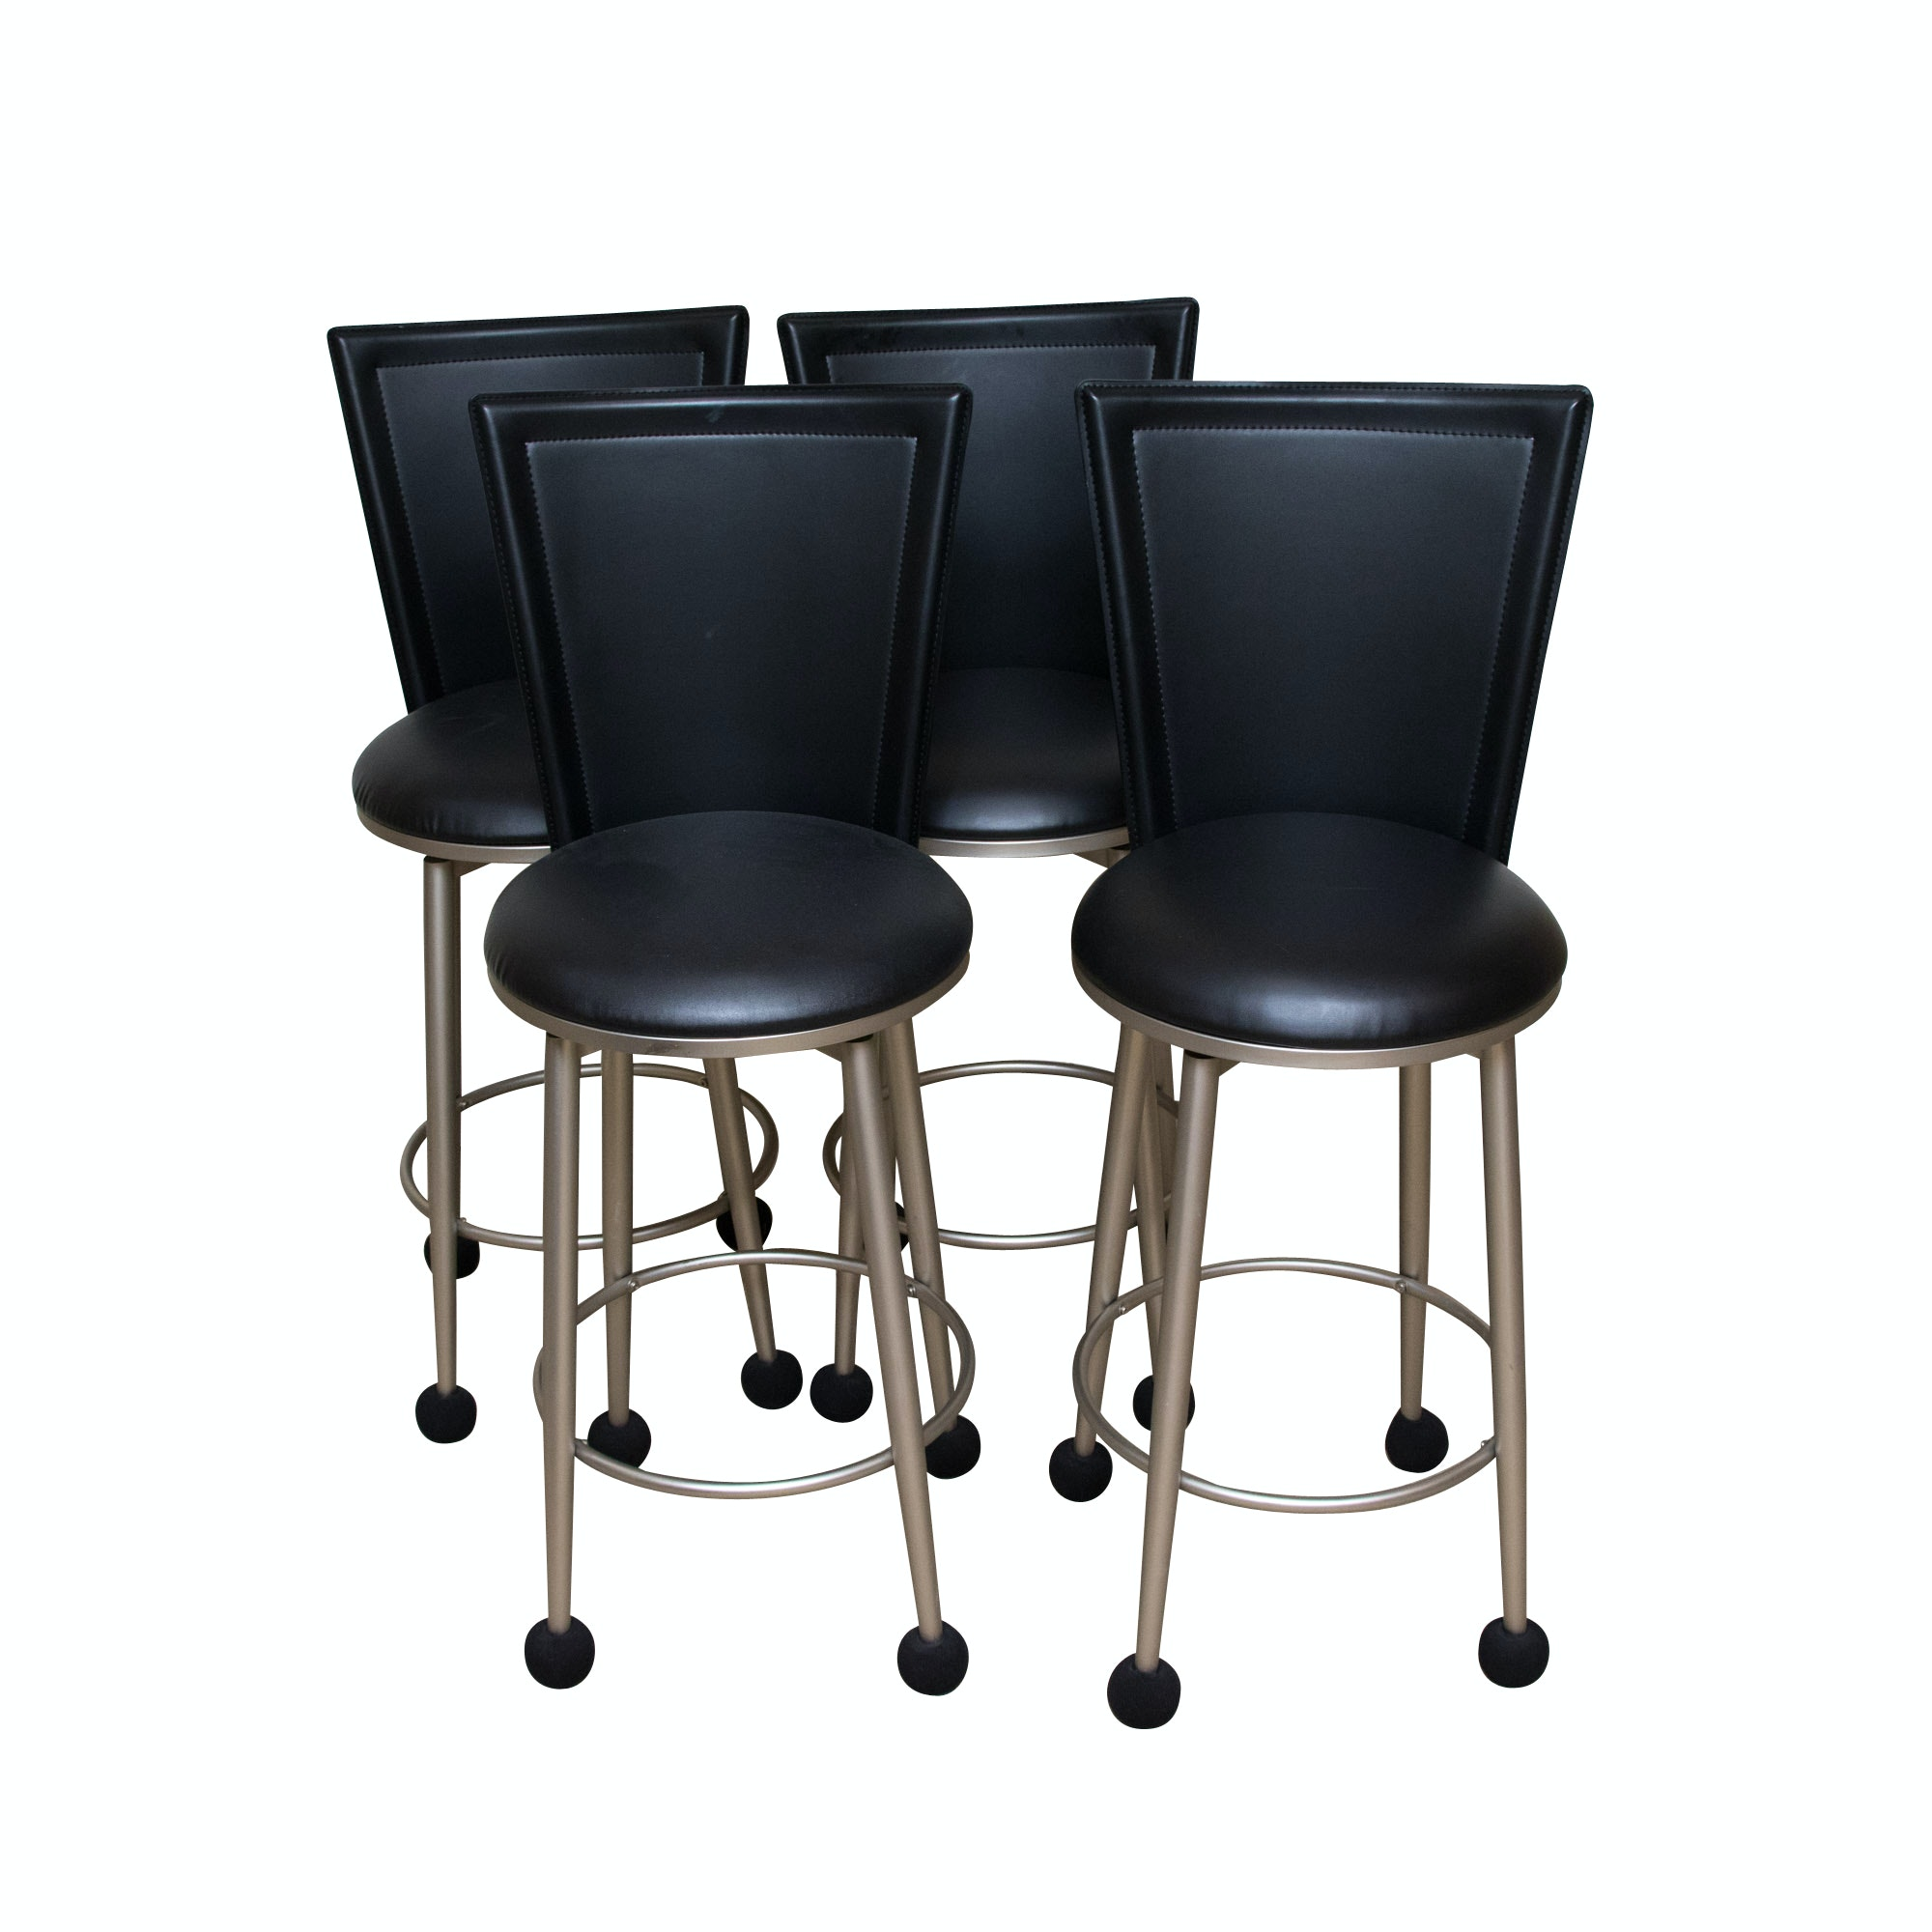 Four Contemporary Barstools